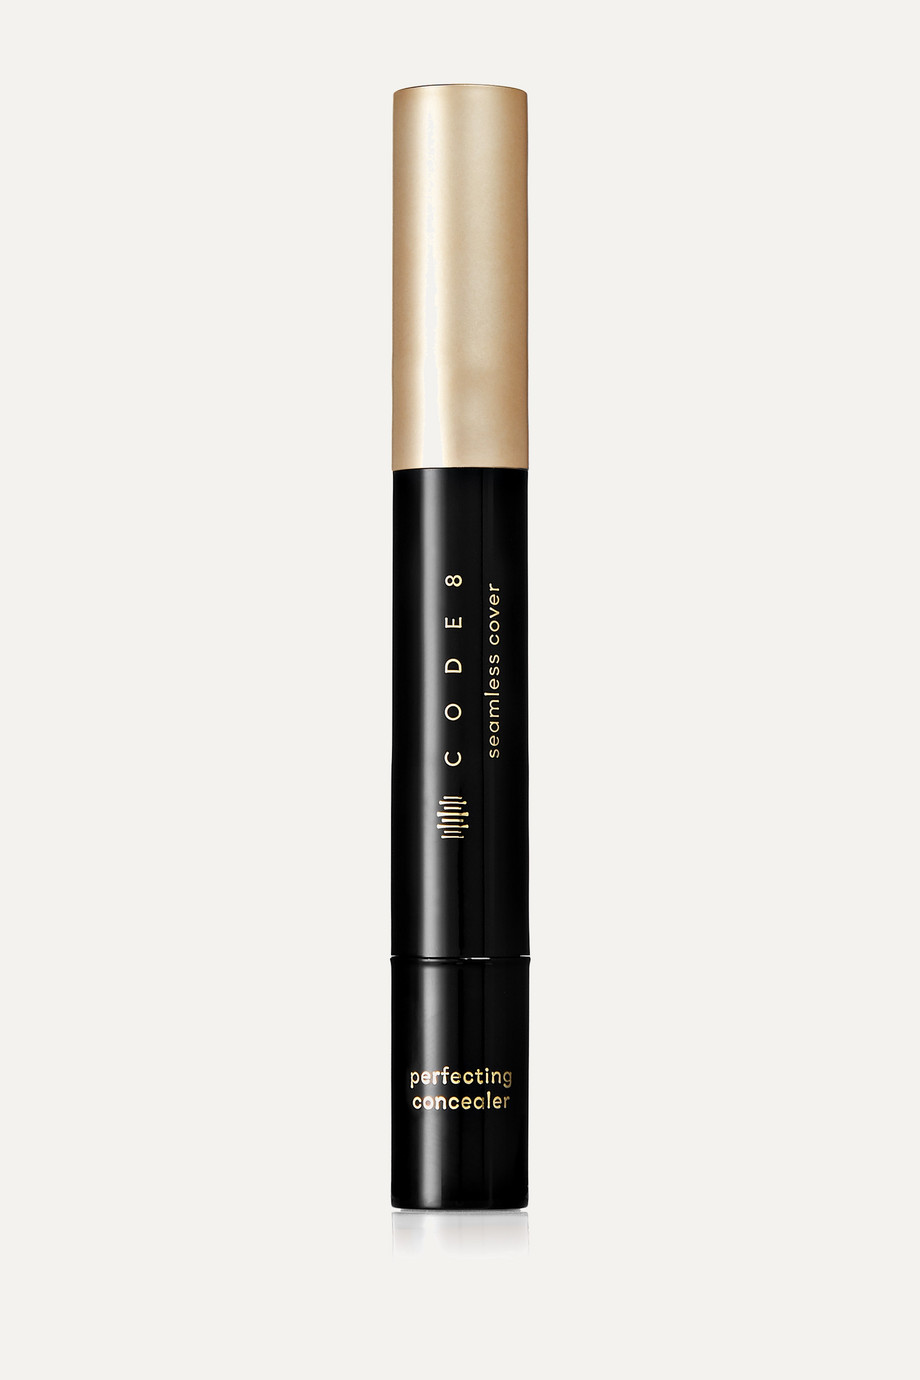 Code8 Seamless Cover Perfecting Concealer - NW15